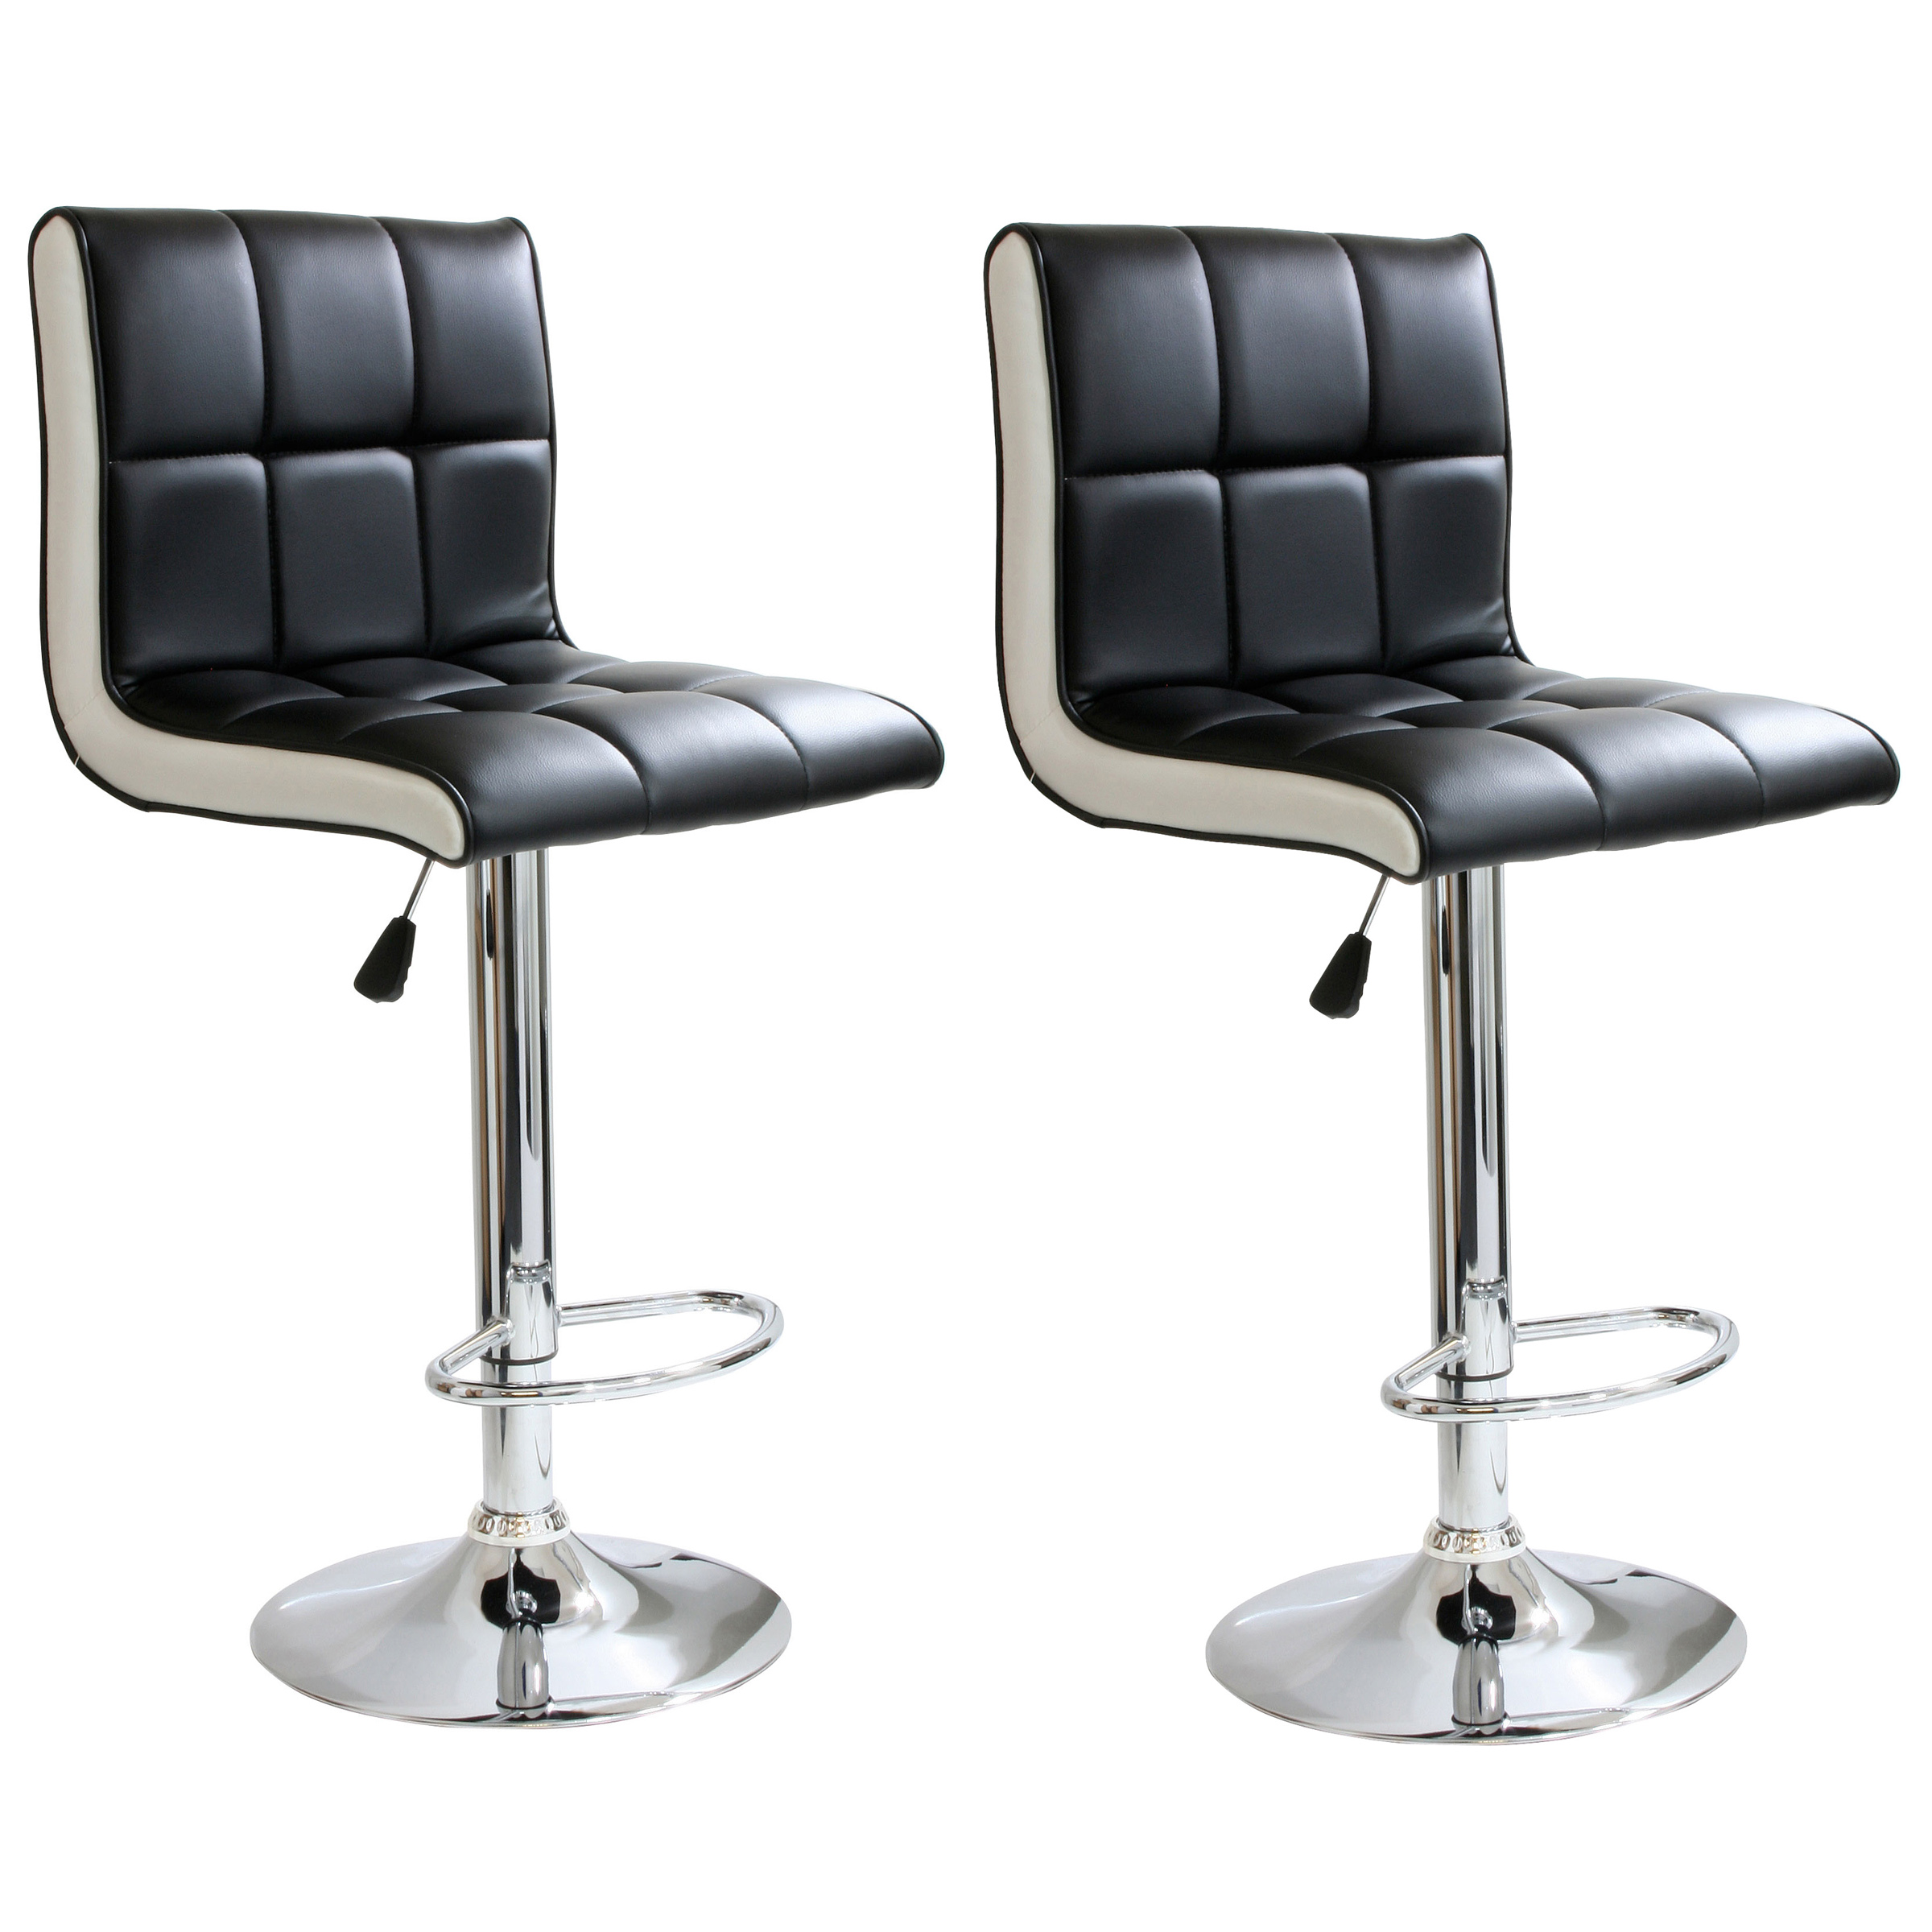 AmeriHome Modern 2 Tone Bar Stool - 2 Piece